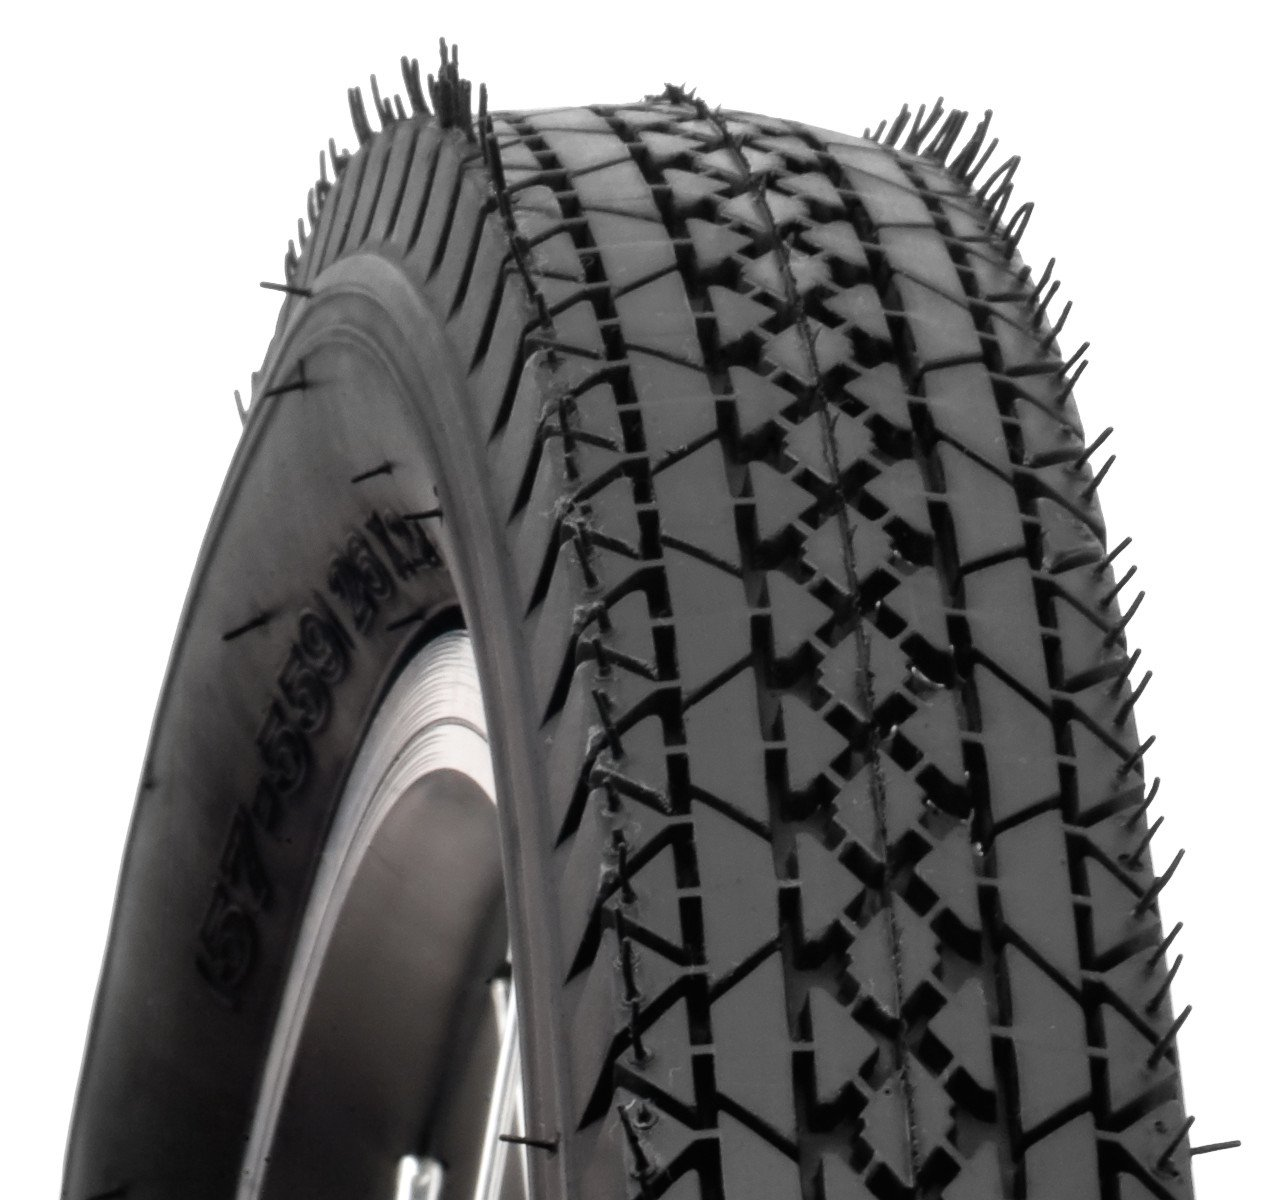 Schwinn Tires: Cruiser Comfort 2.12 with Kevlar